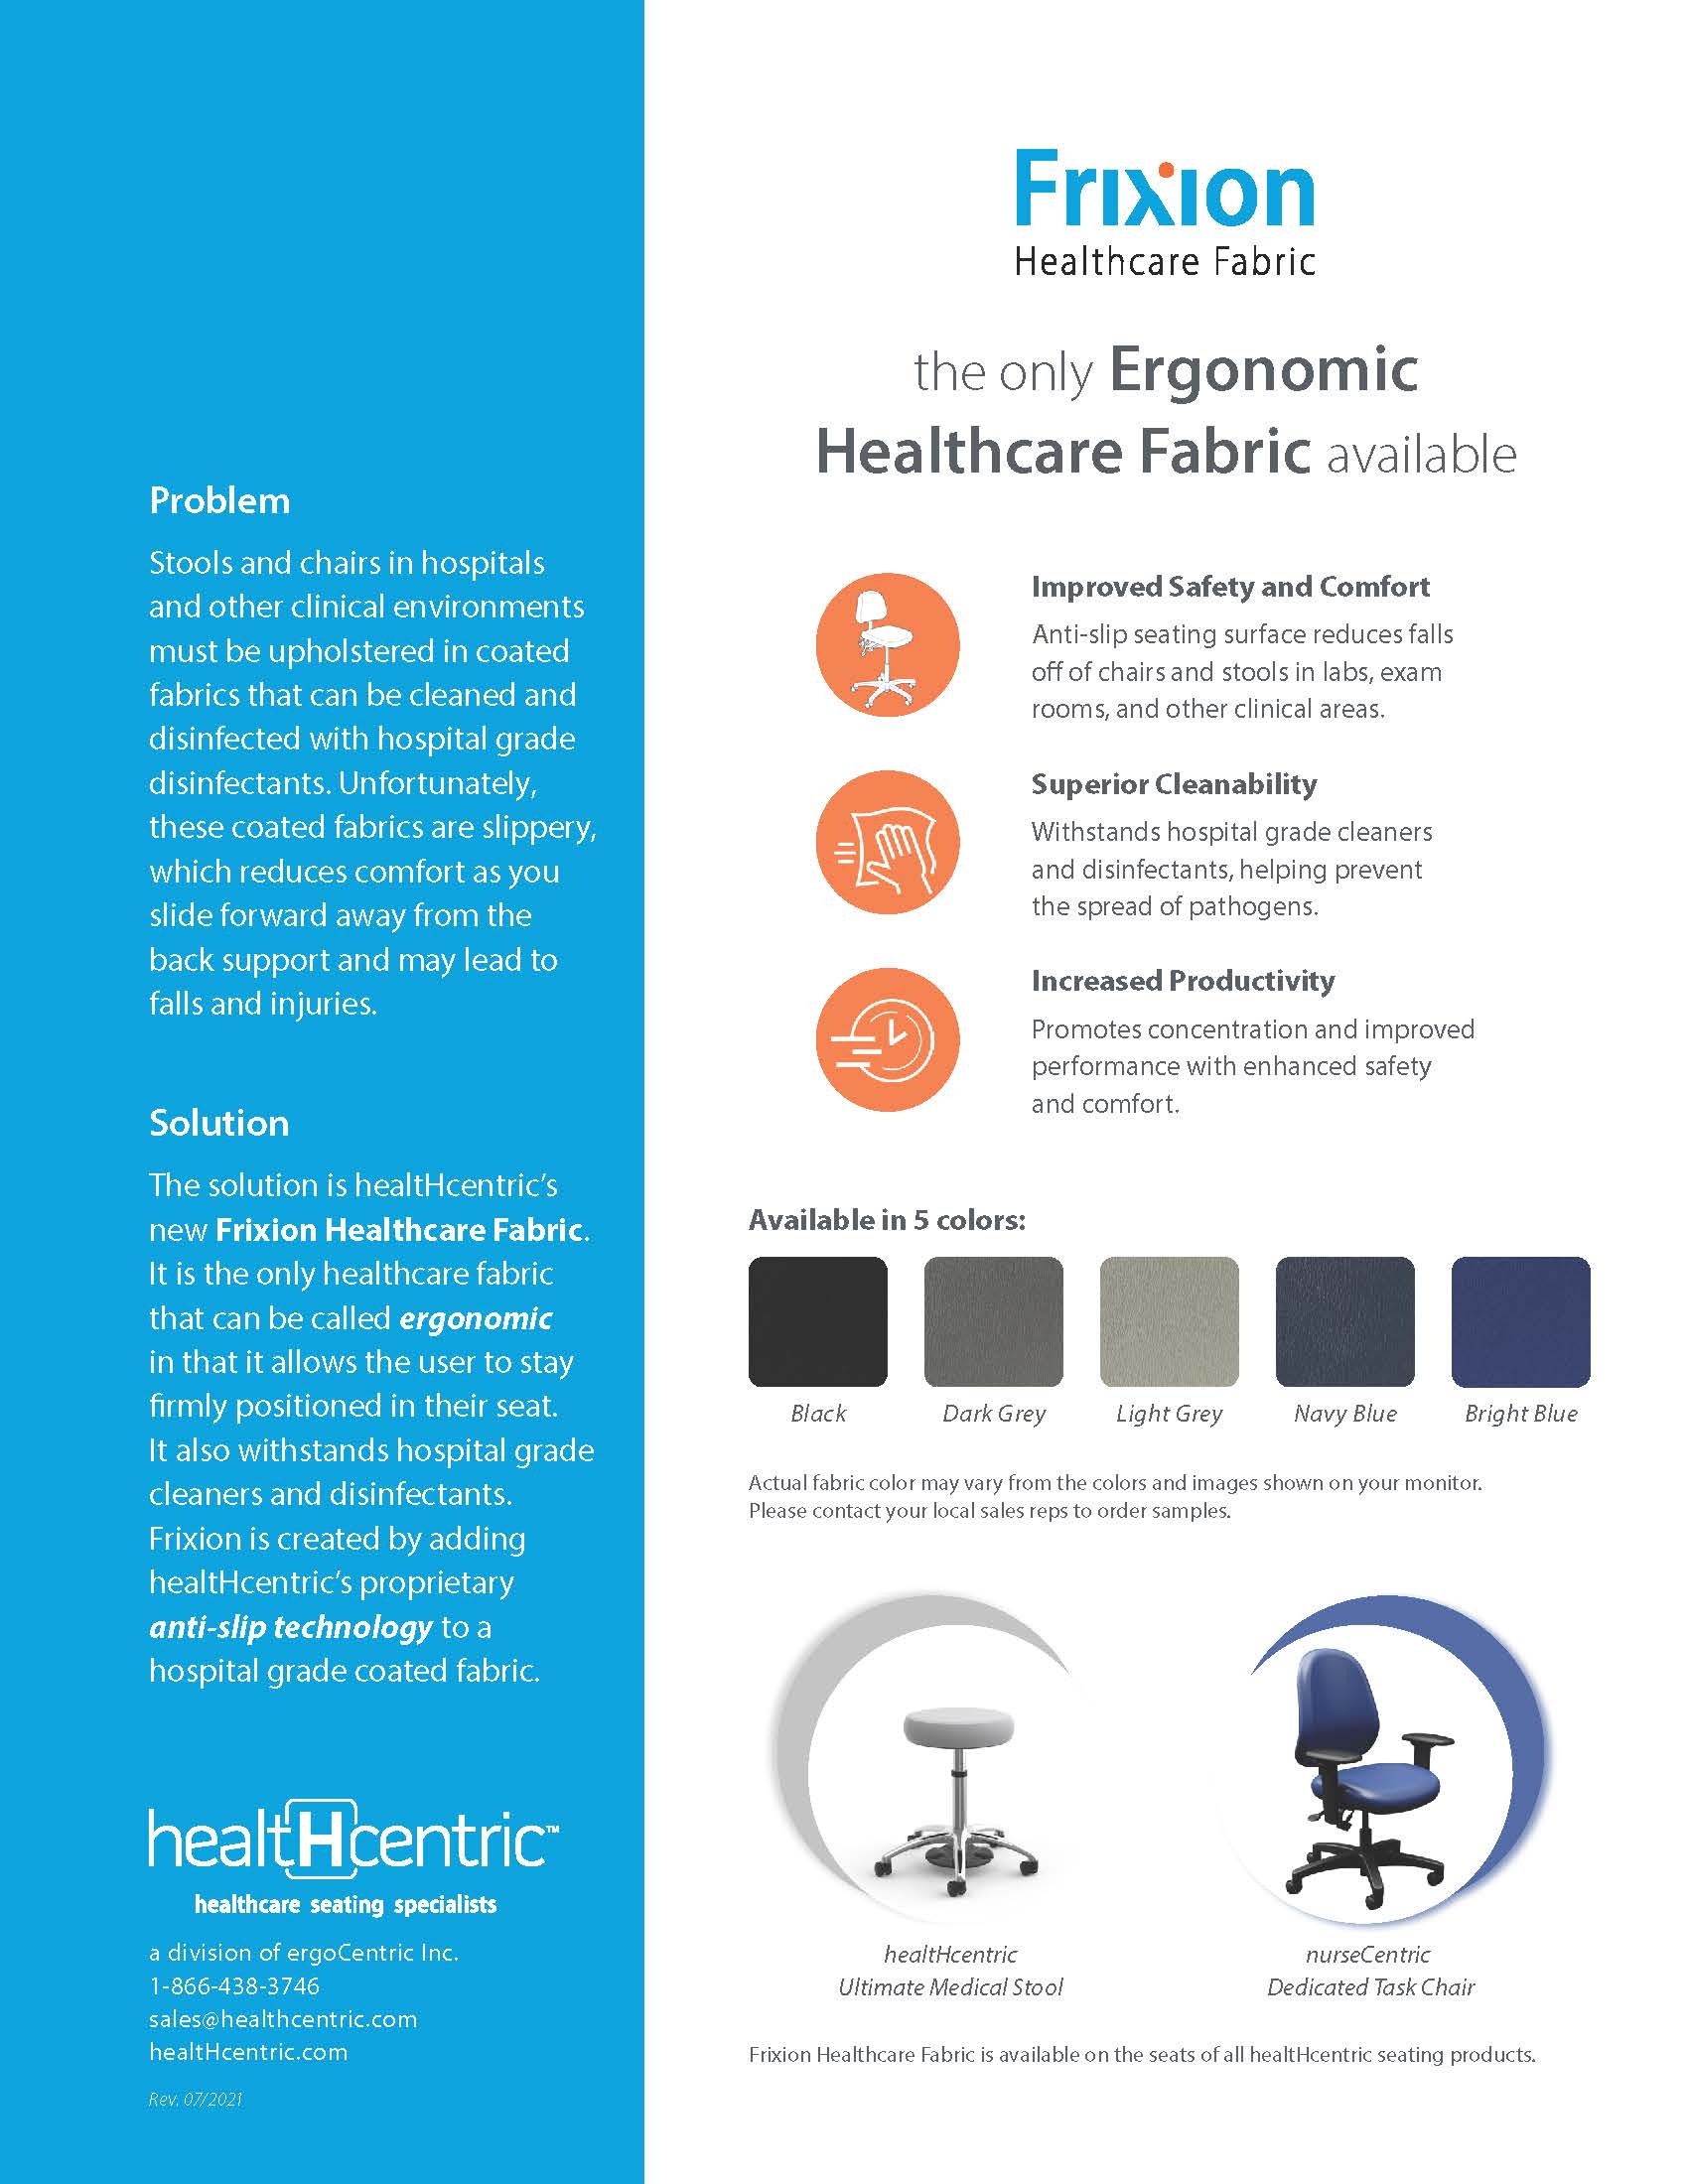 Frixion Healthcare Fabric